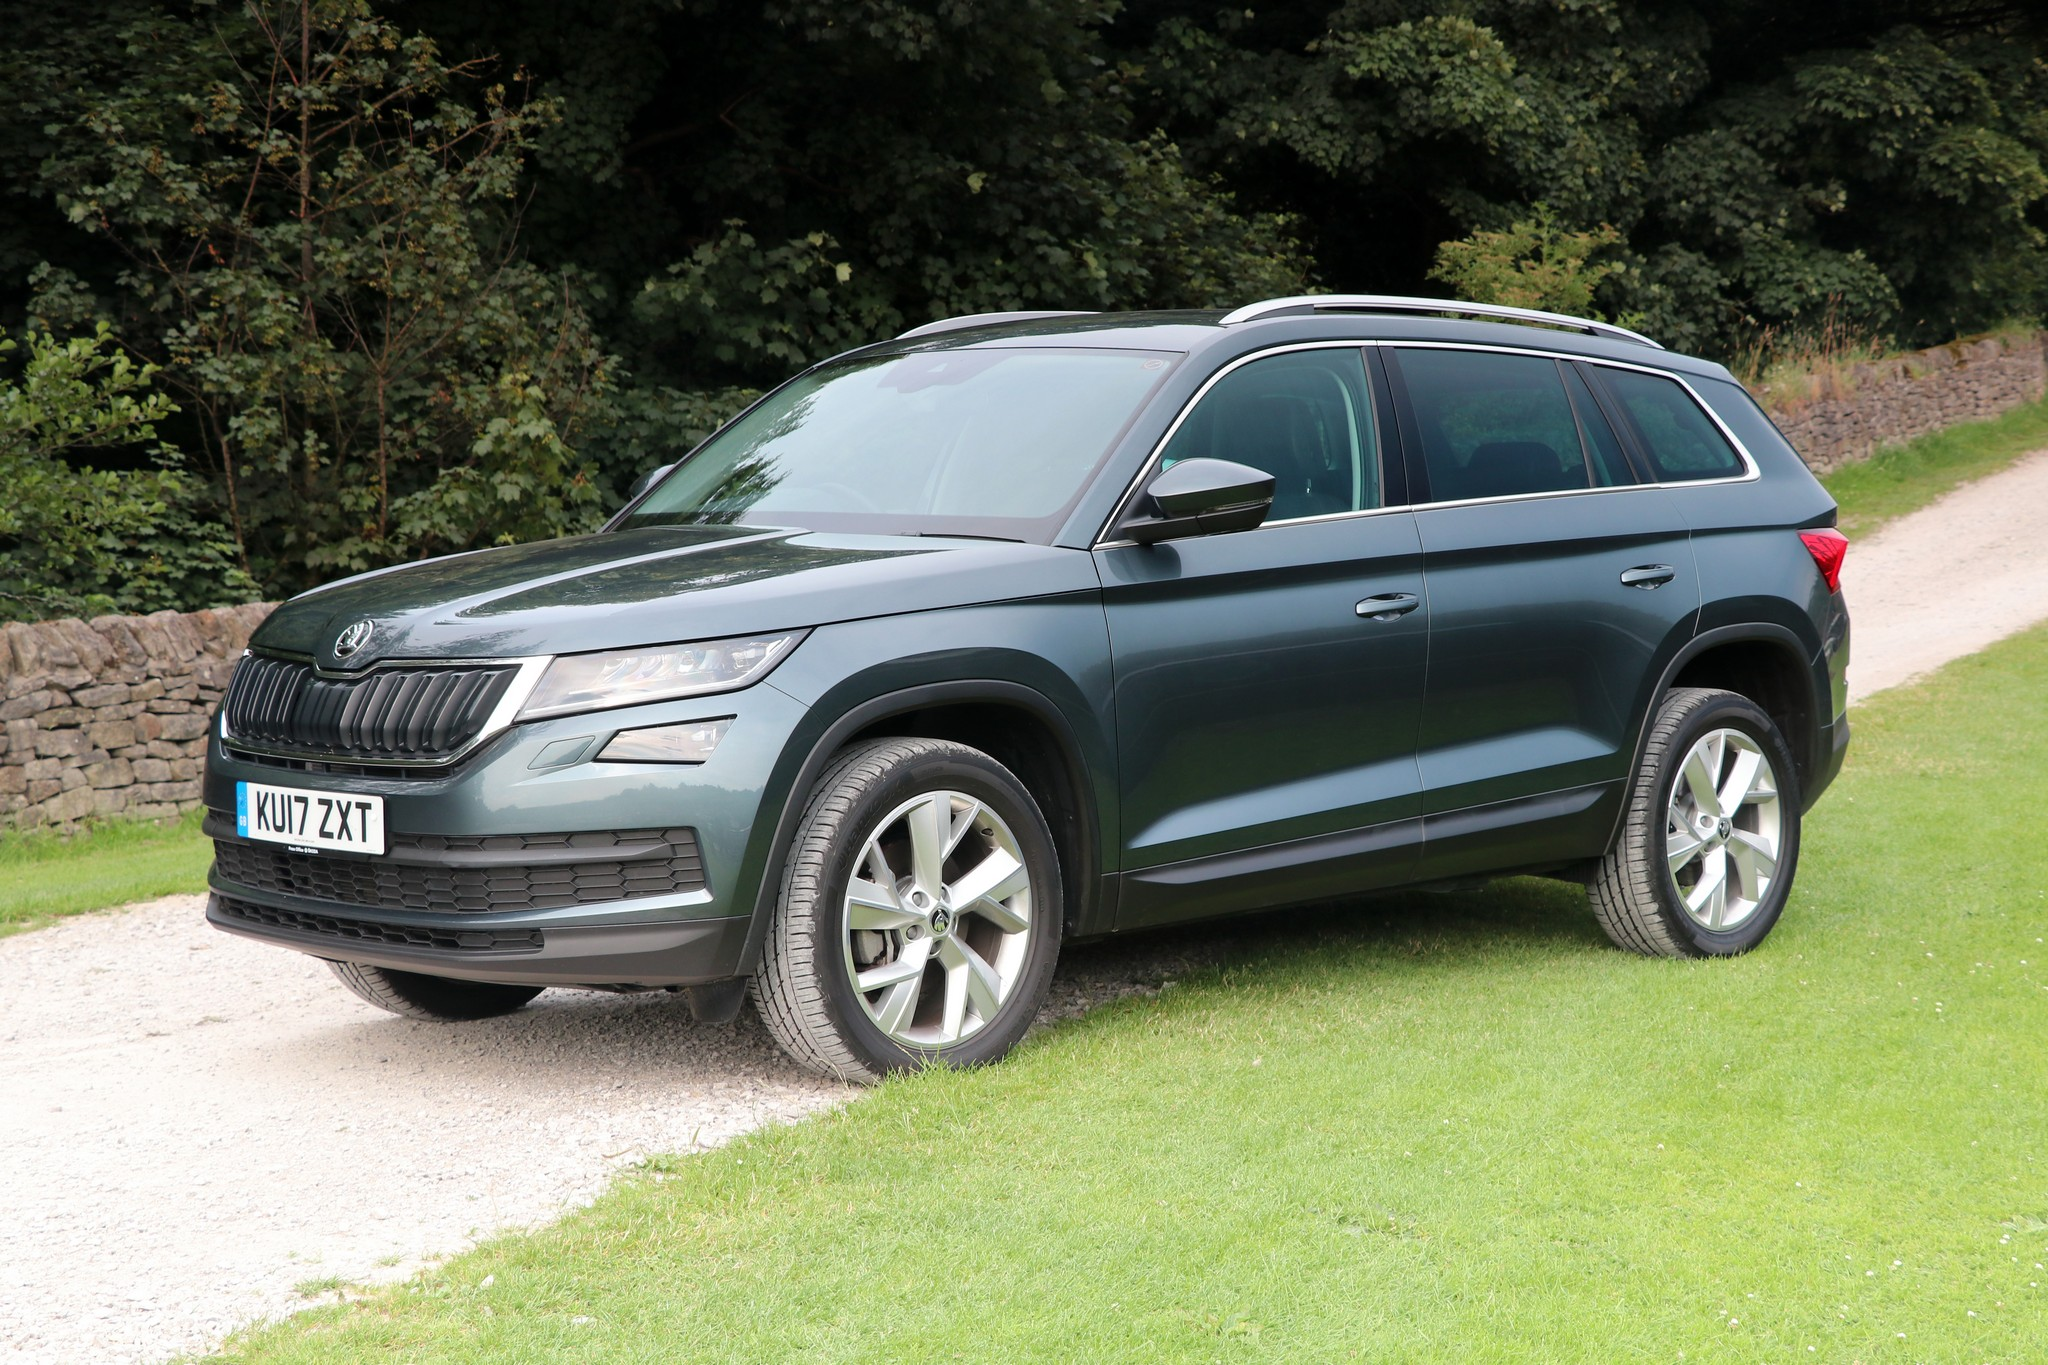 skoda kodiaq edition 2 0 tdi dsg car review. Black Bedroom Furniture Sets. Home Design Ideas